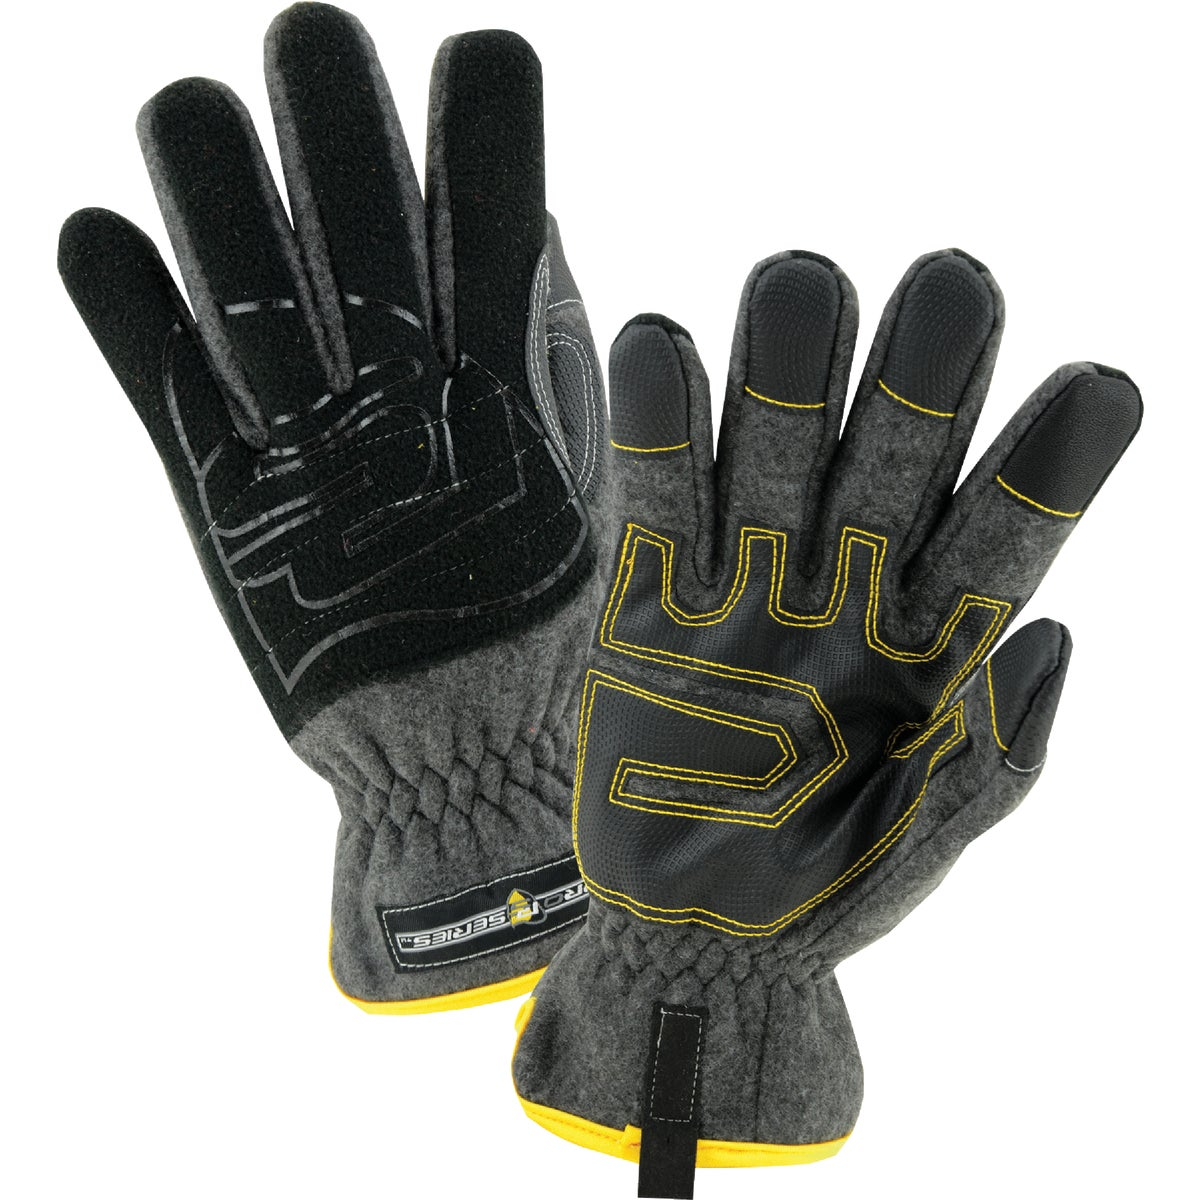 LRG SUMMIT GLOVE - SMB2-04-L by Ironclad Performance